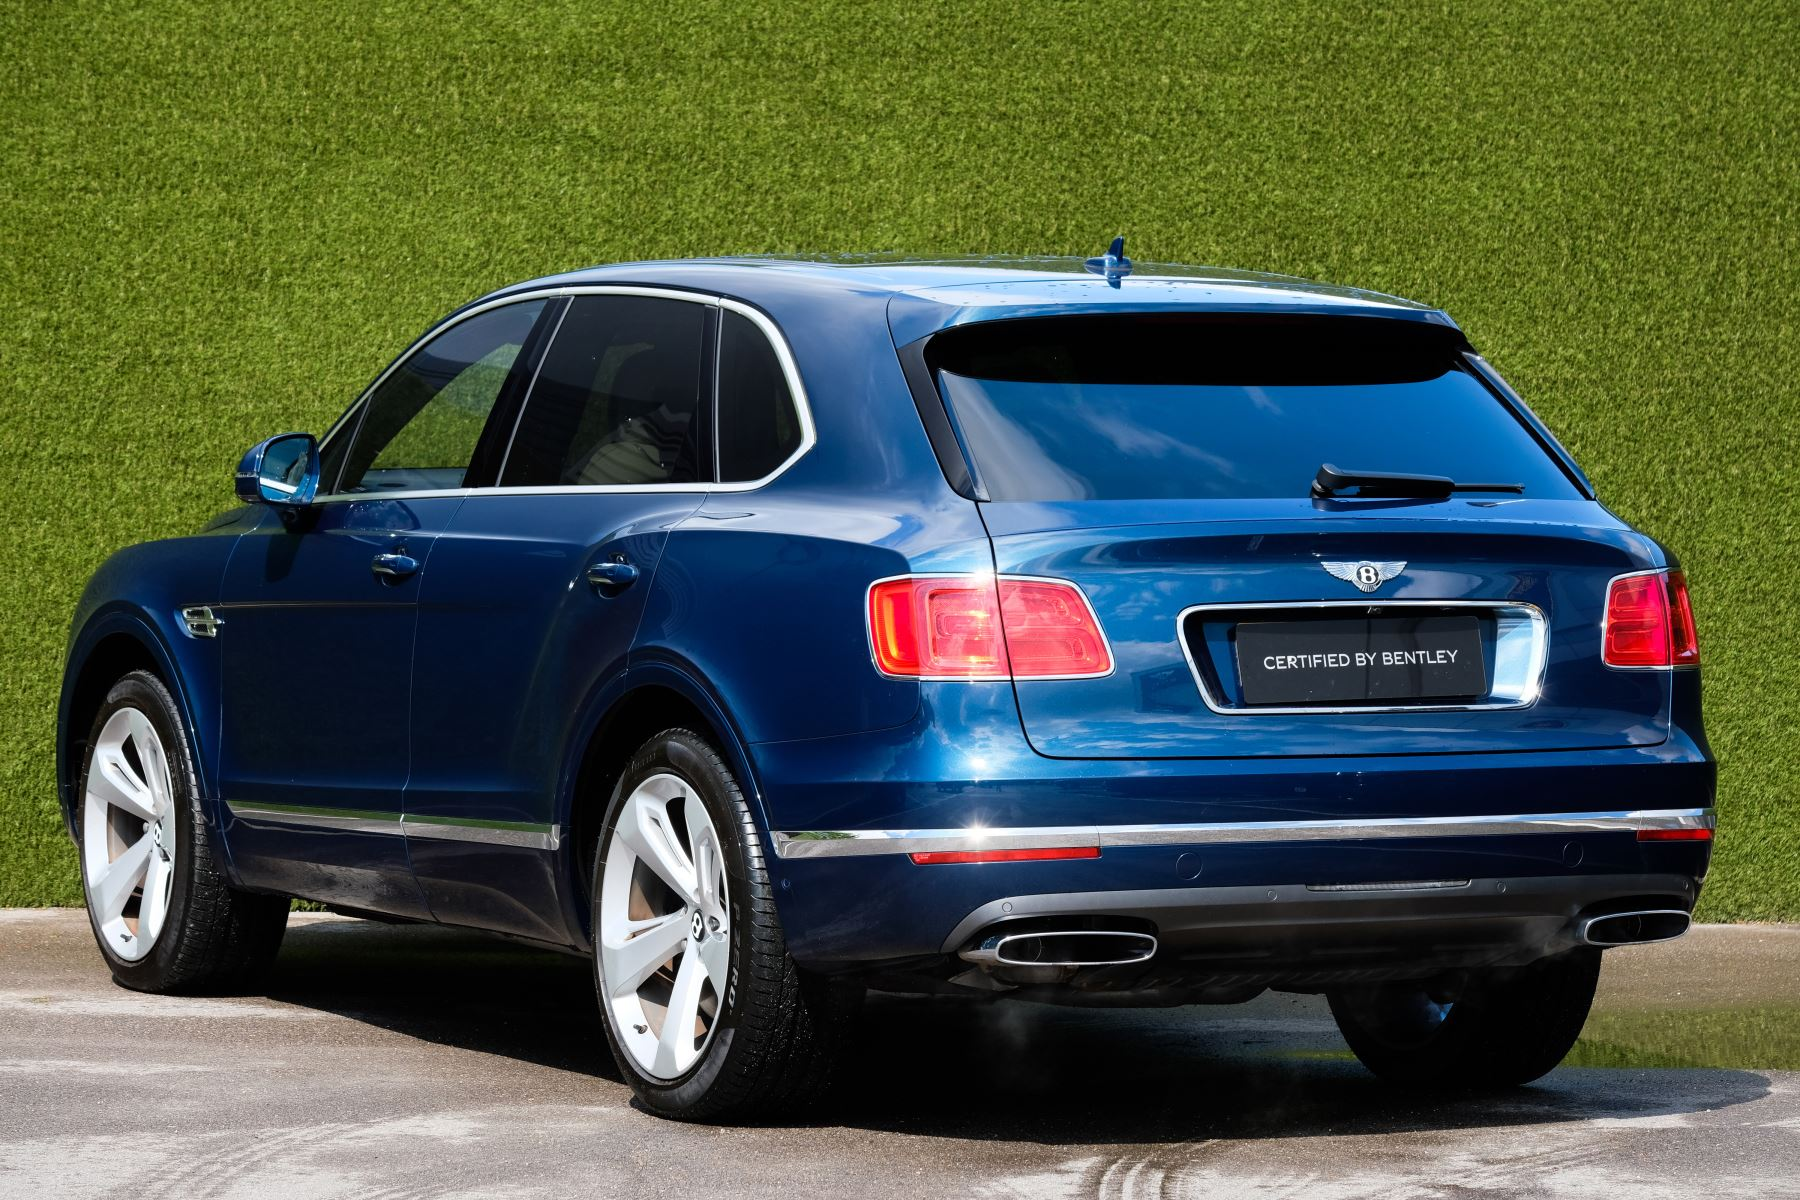 Bentley Bentayga 6.0 W12 - All Terrain, Sunshine, City and Touring Specification image 4